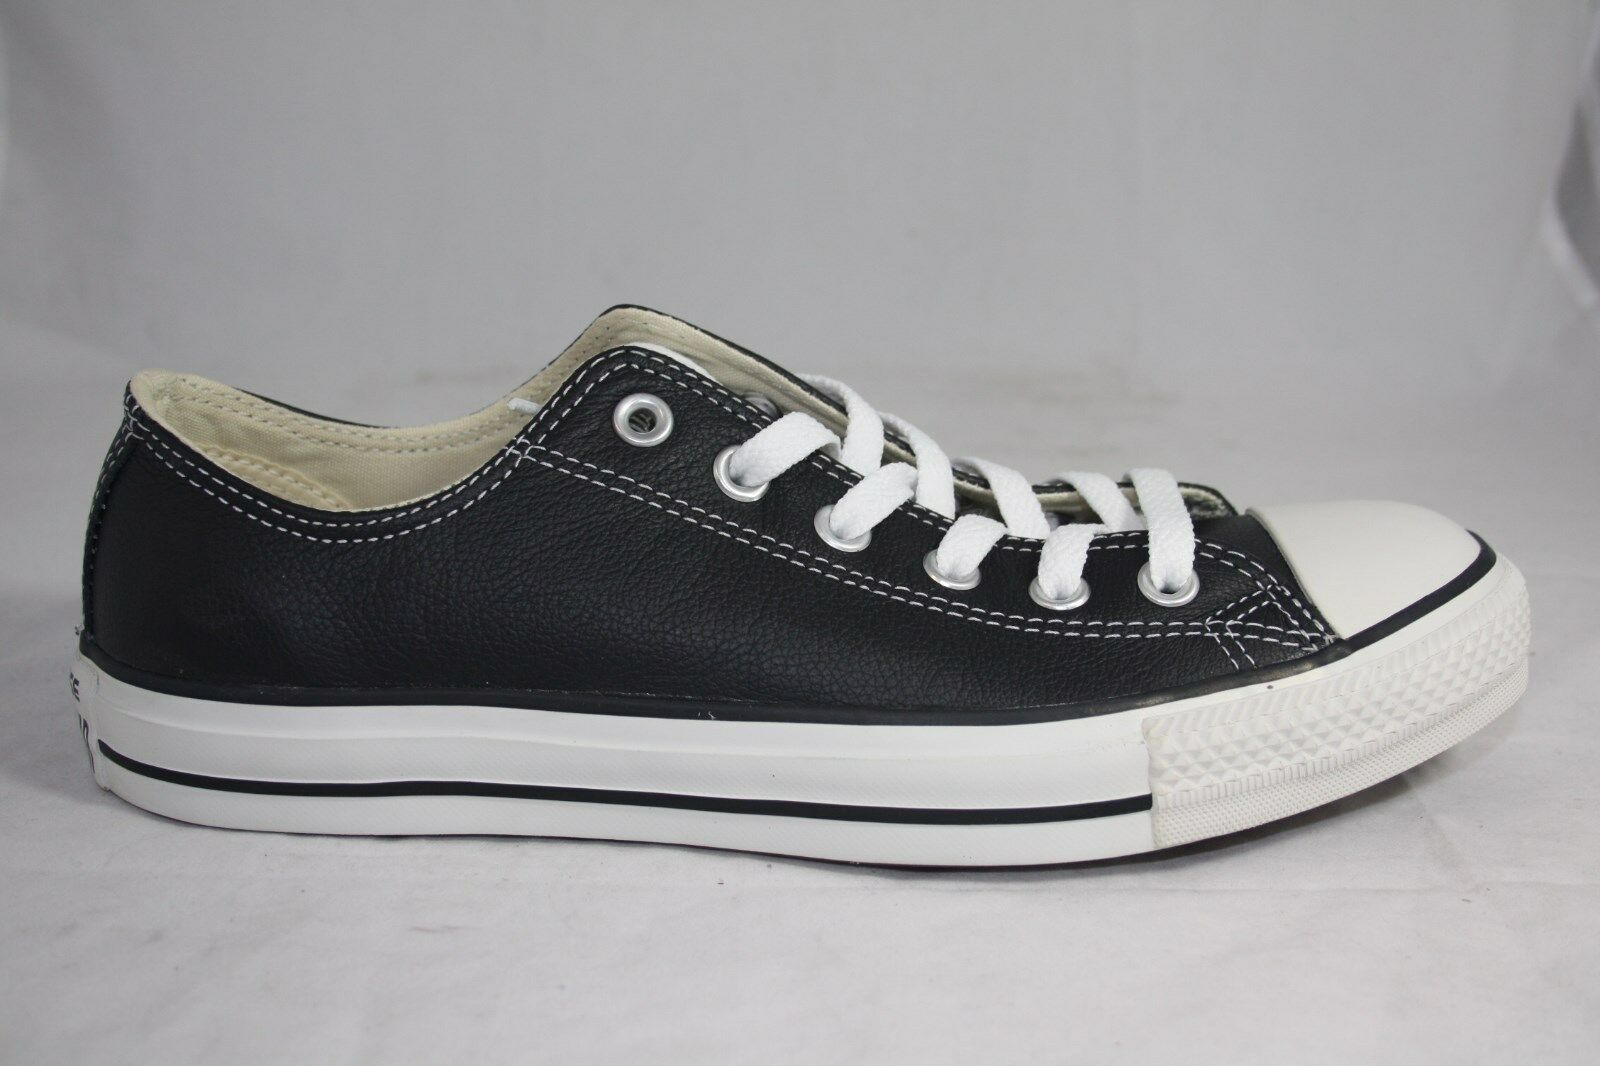 MENS CONVERSE LEATHER LOW 107348 BLACK MILK COLOR CT OX SIZE AVAL 610.5